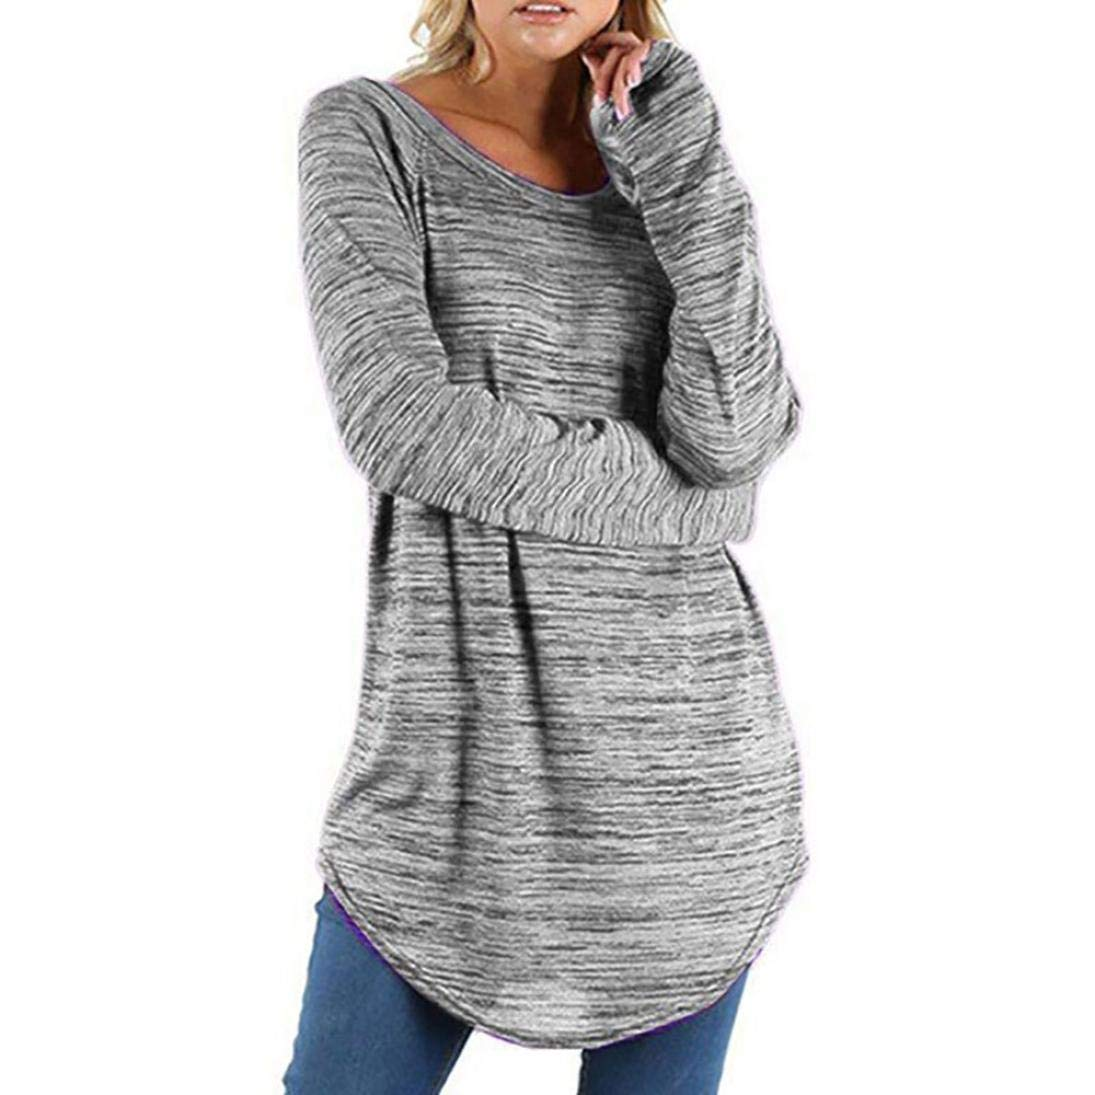 Clearance Sales Shirt Women Casual V Neck Tops Blouse Pullover Plus Size AfterSo